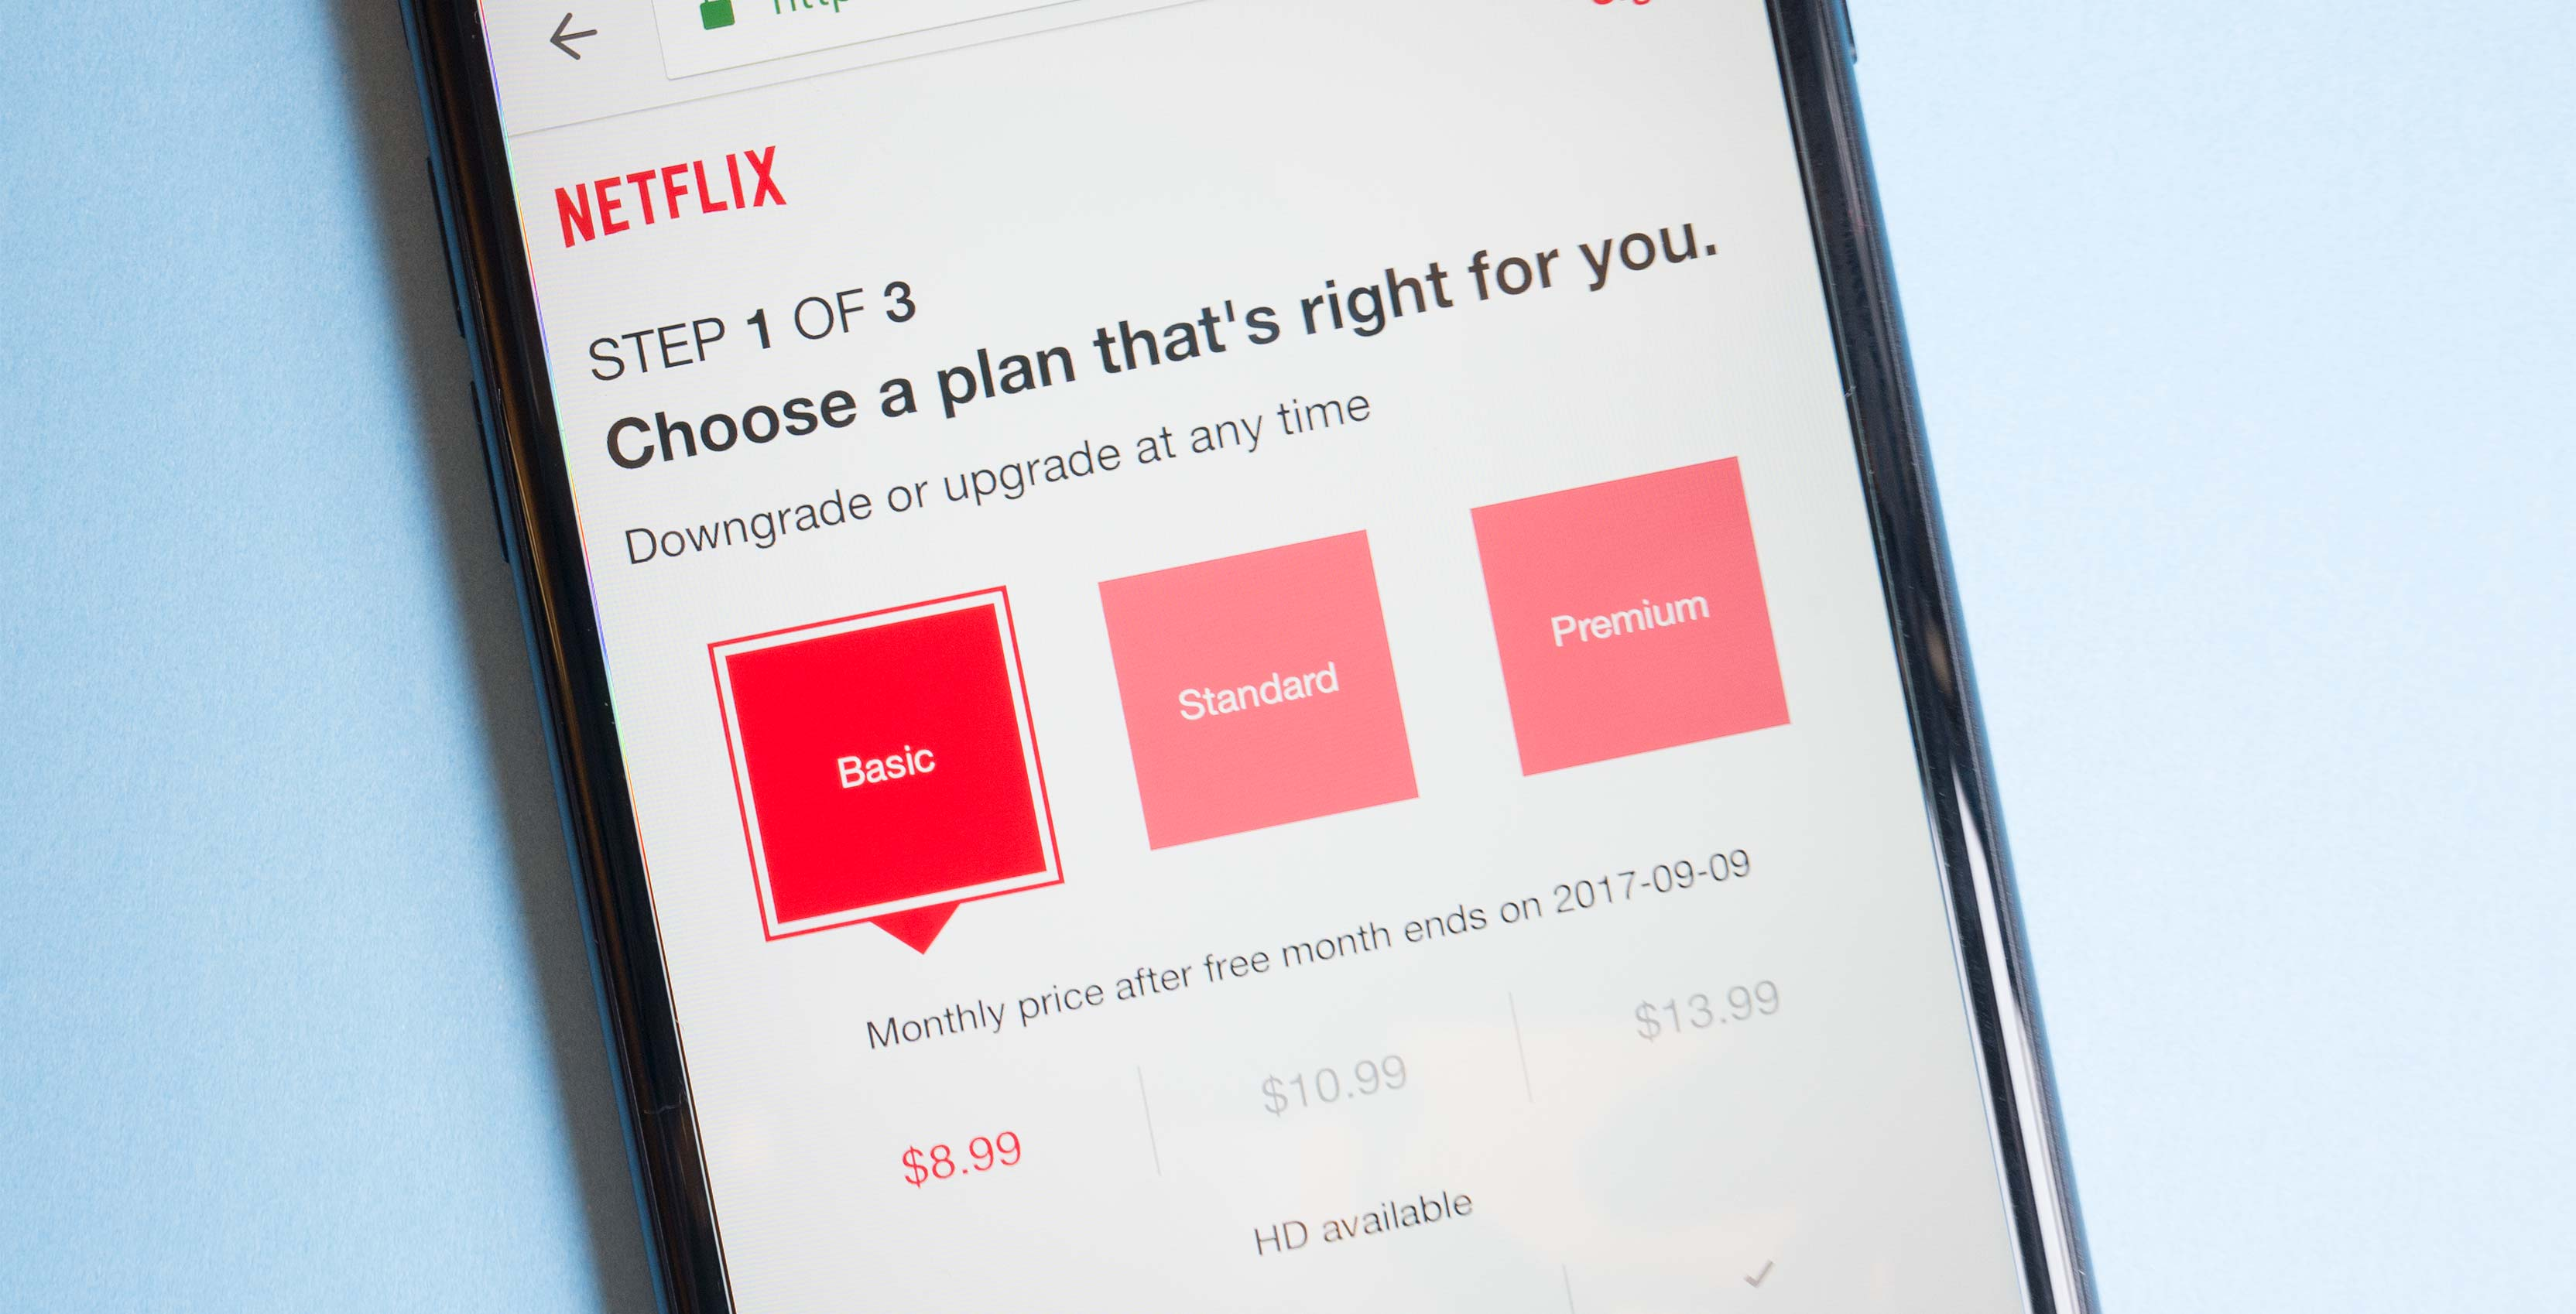 Netflix's monthly subscription price is increasing in Canada